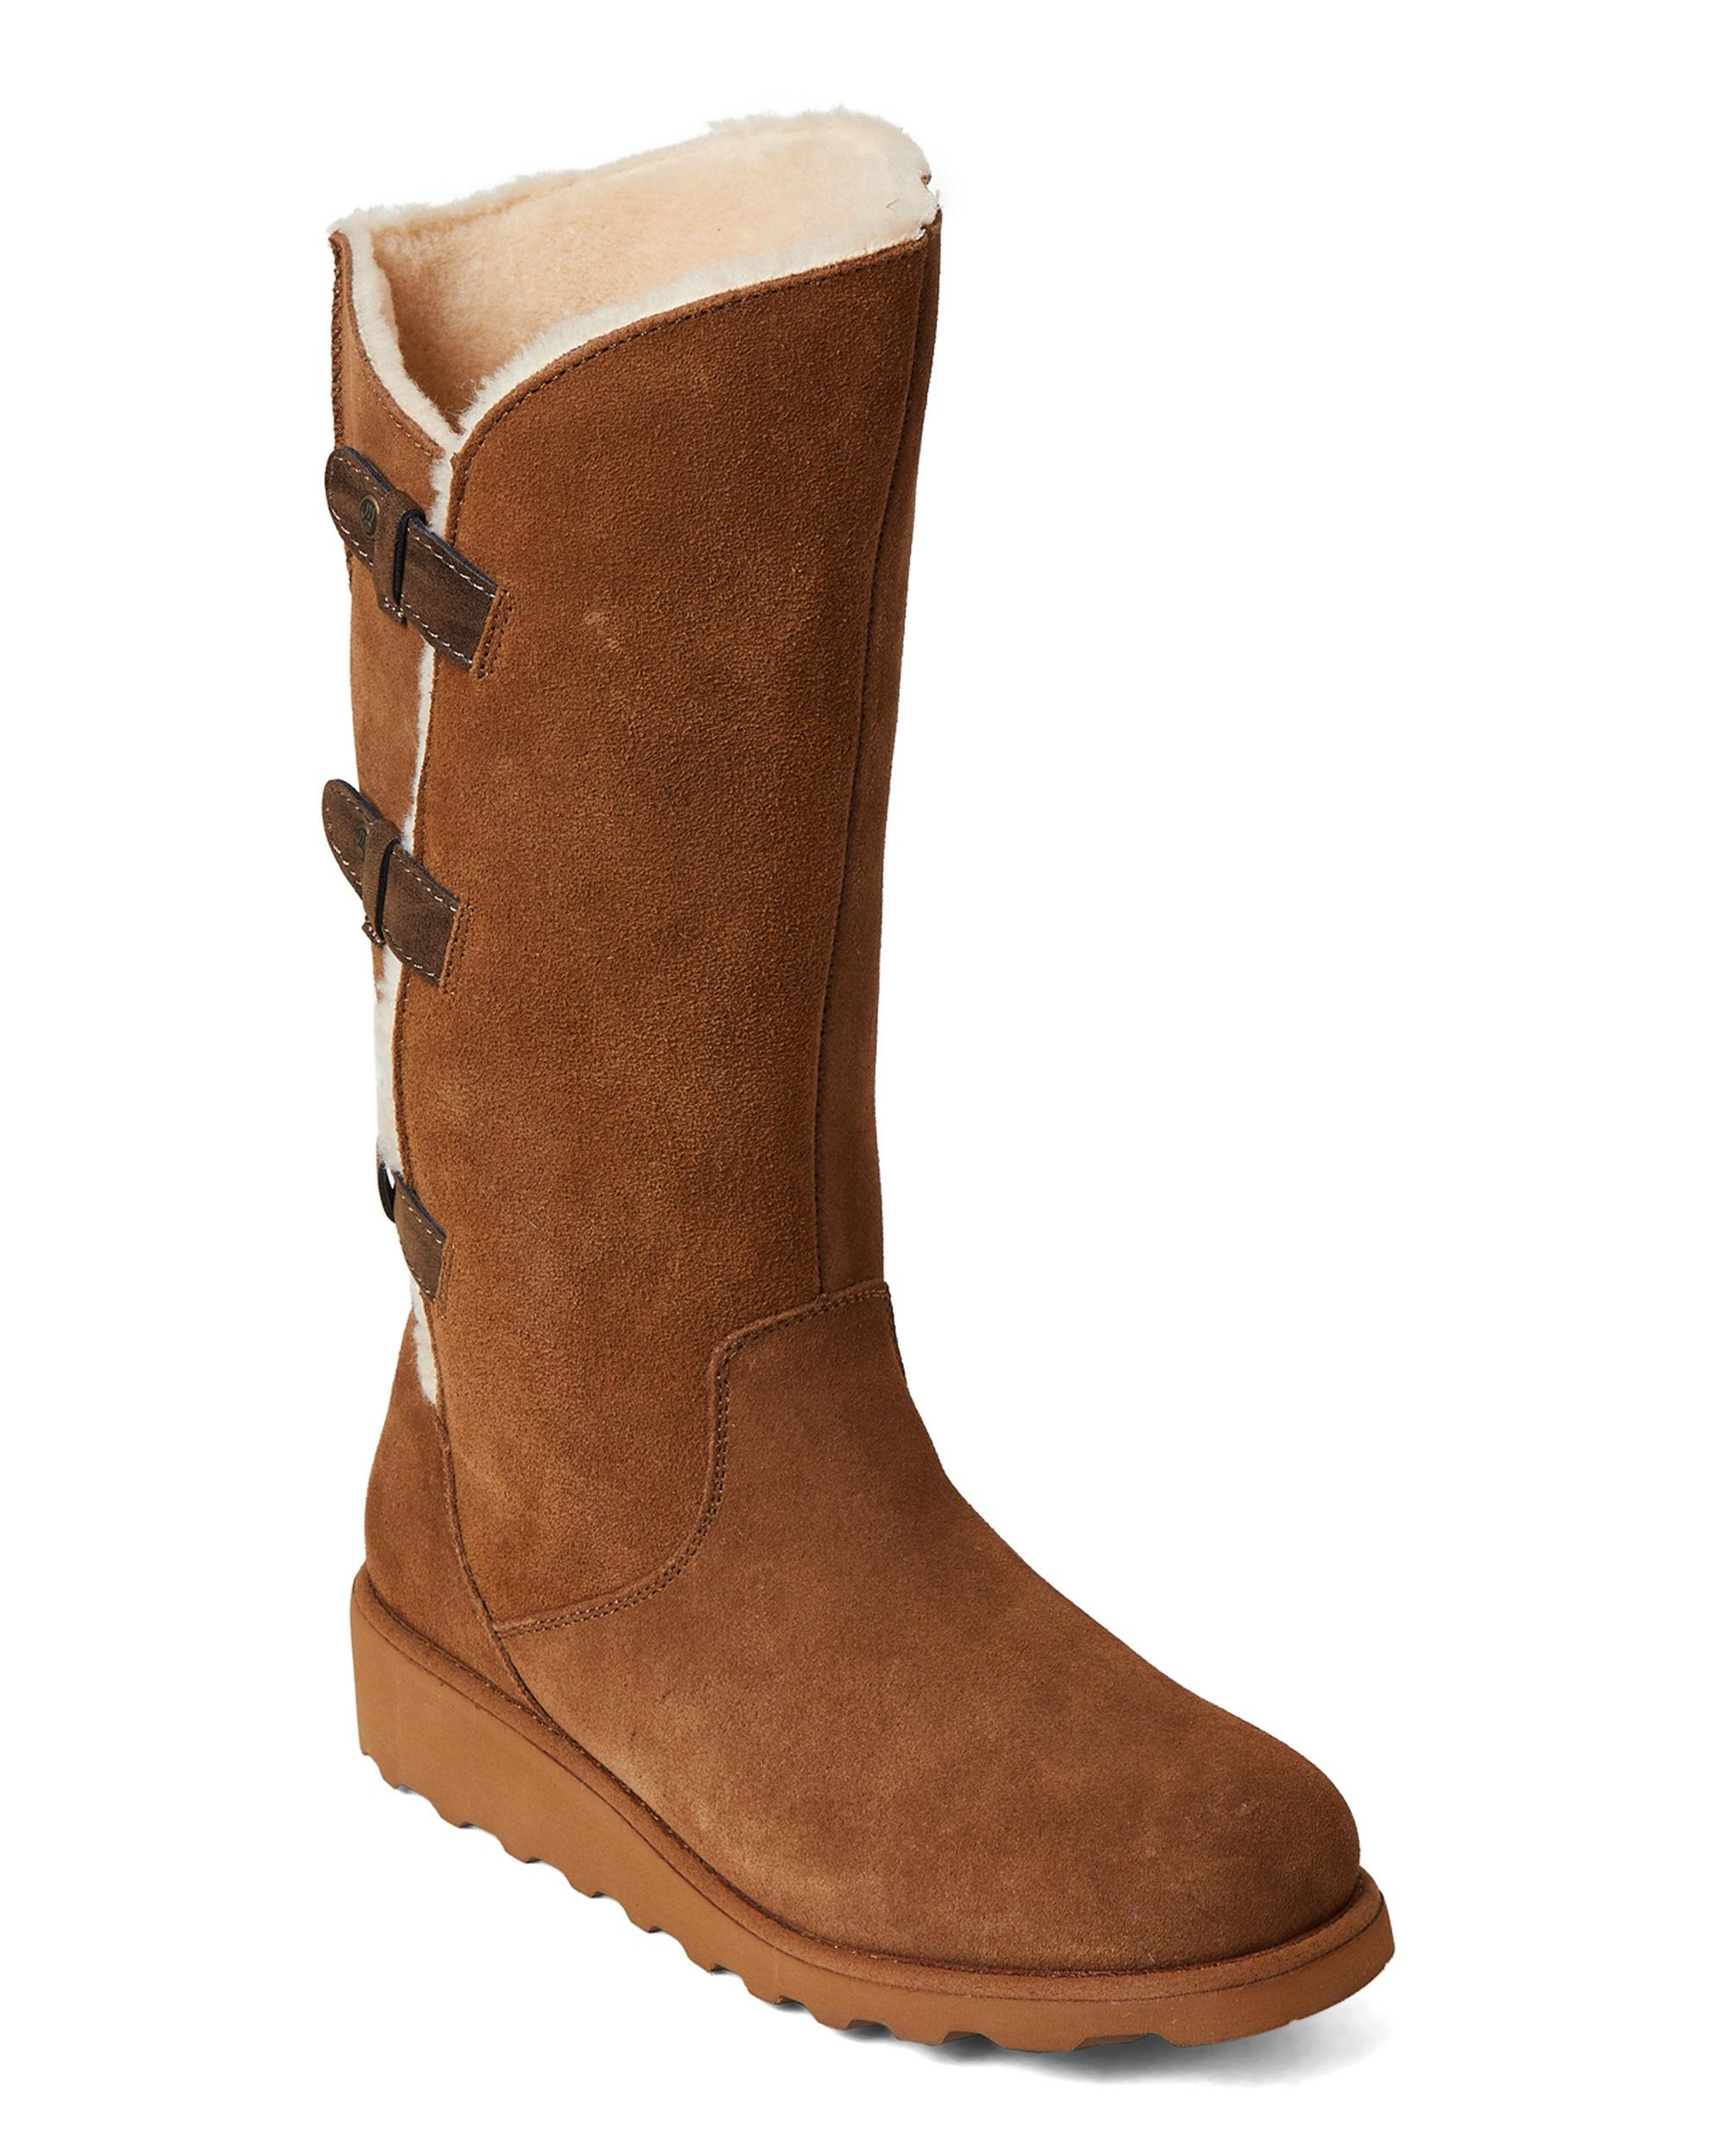 0108cca34bd Lyst - BEARPAW Hickory Hayden Real Fur Tall Wedge Boots in Brown